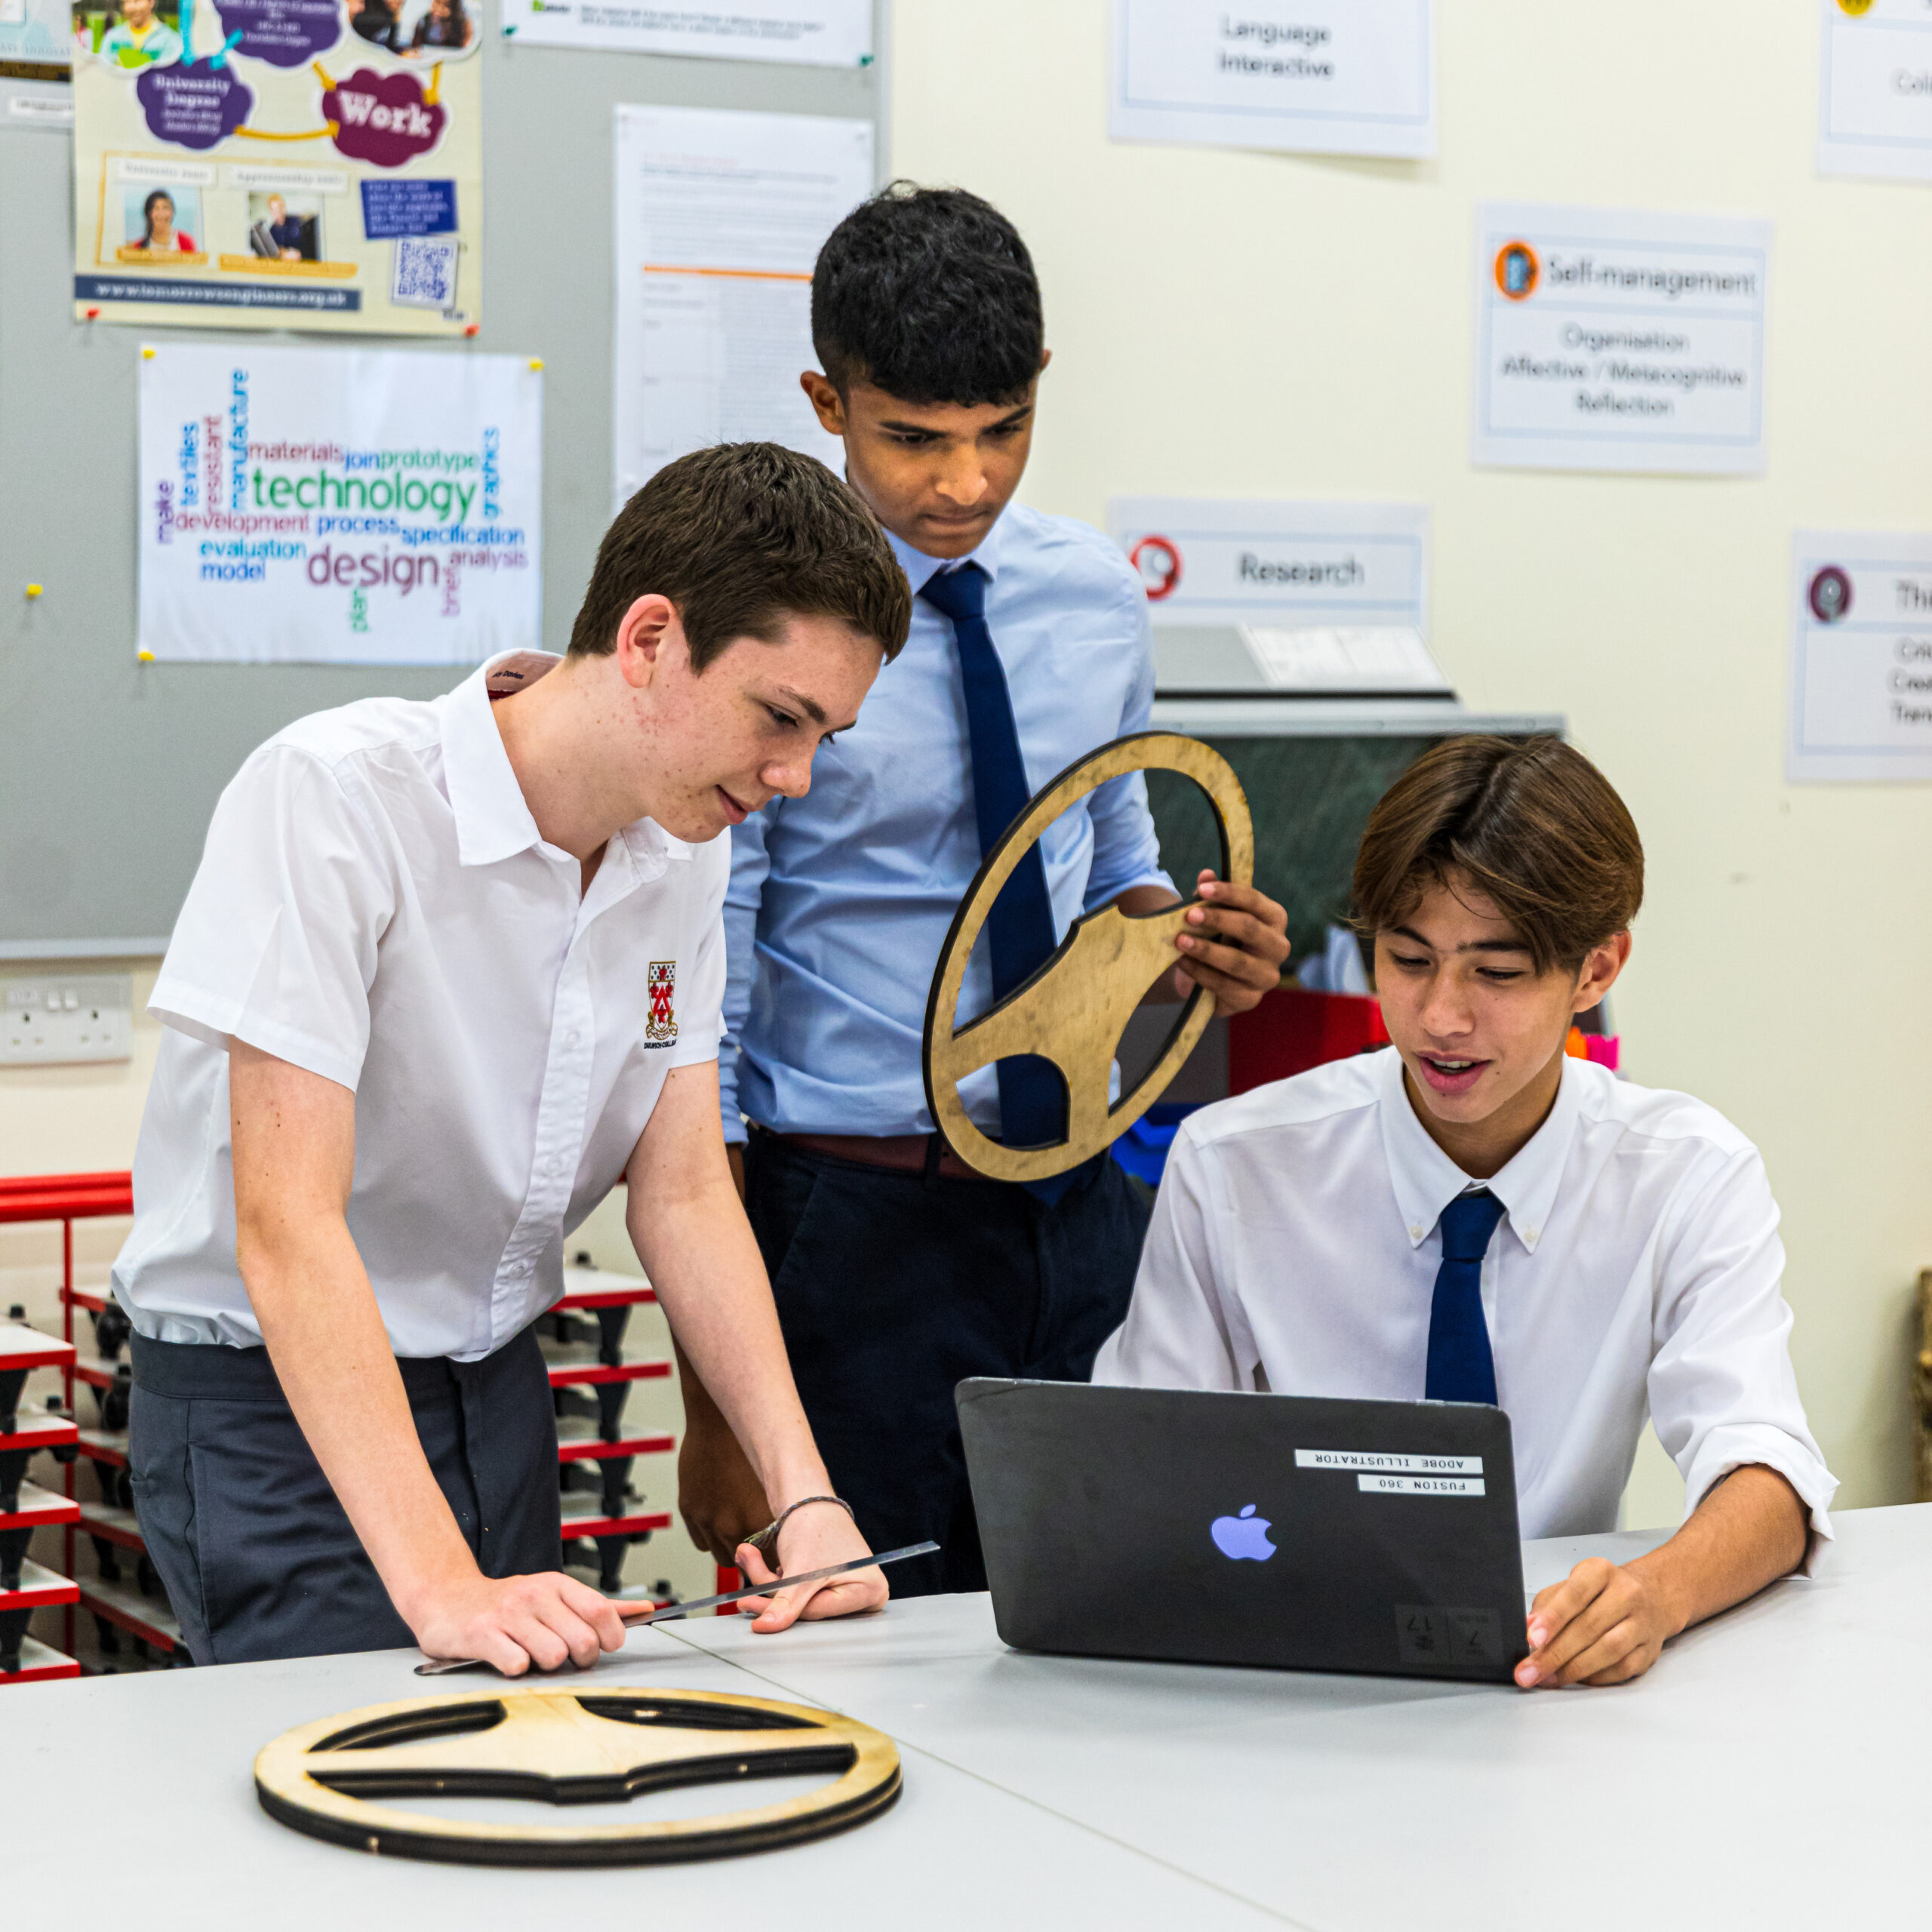 Students discussing project